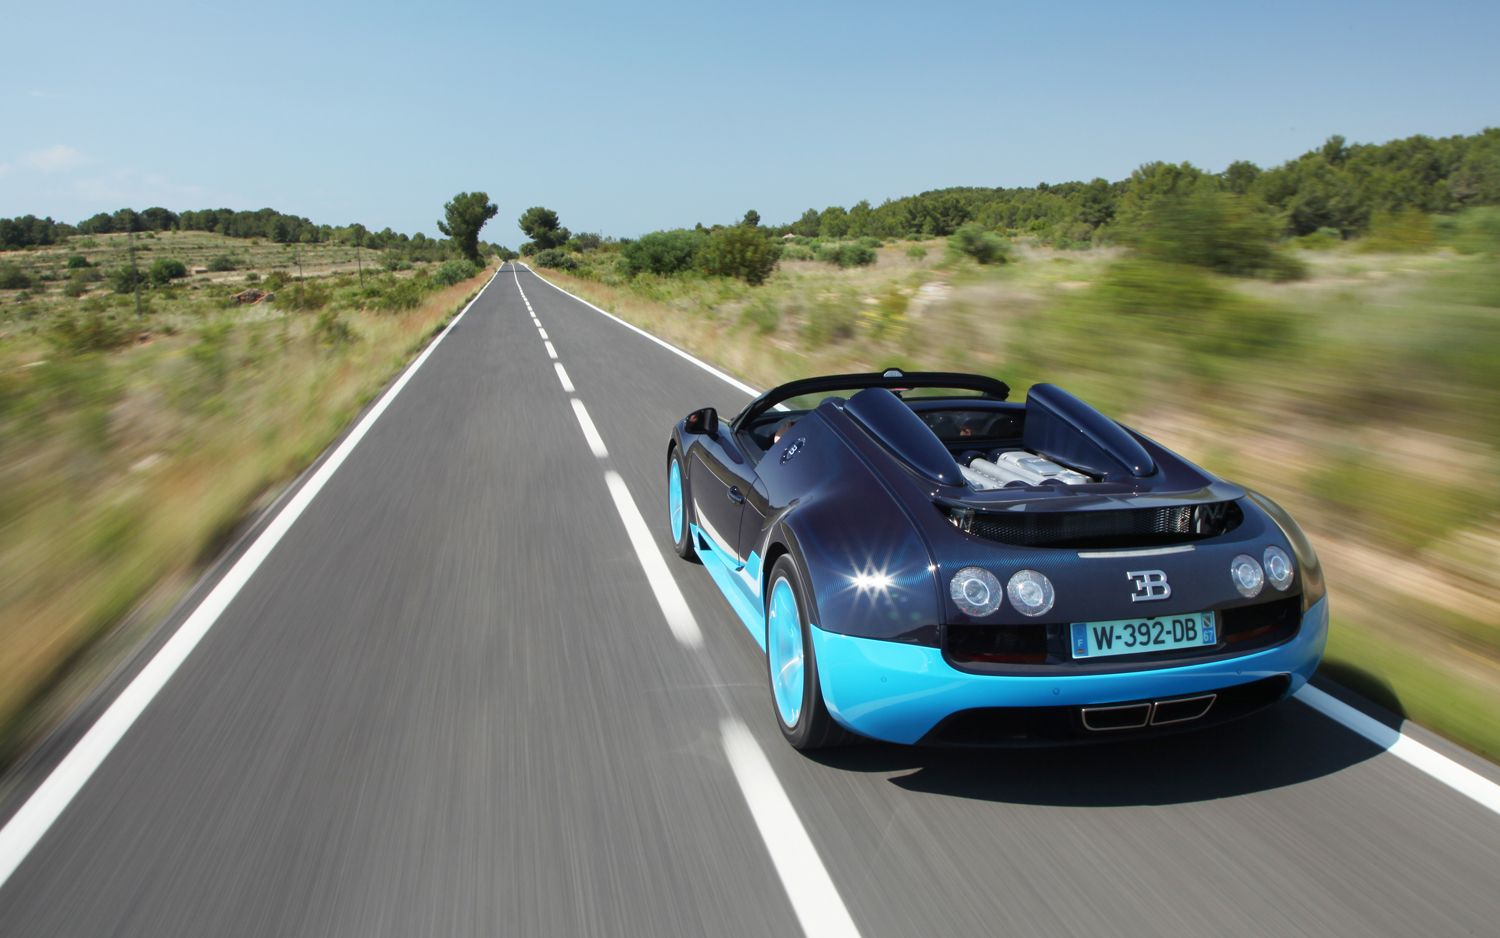 2013 Bugatti Veyron Grand Sport Vitesse Rear Three Quarters In Motion 21